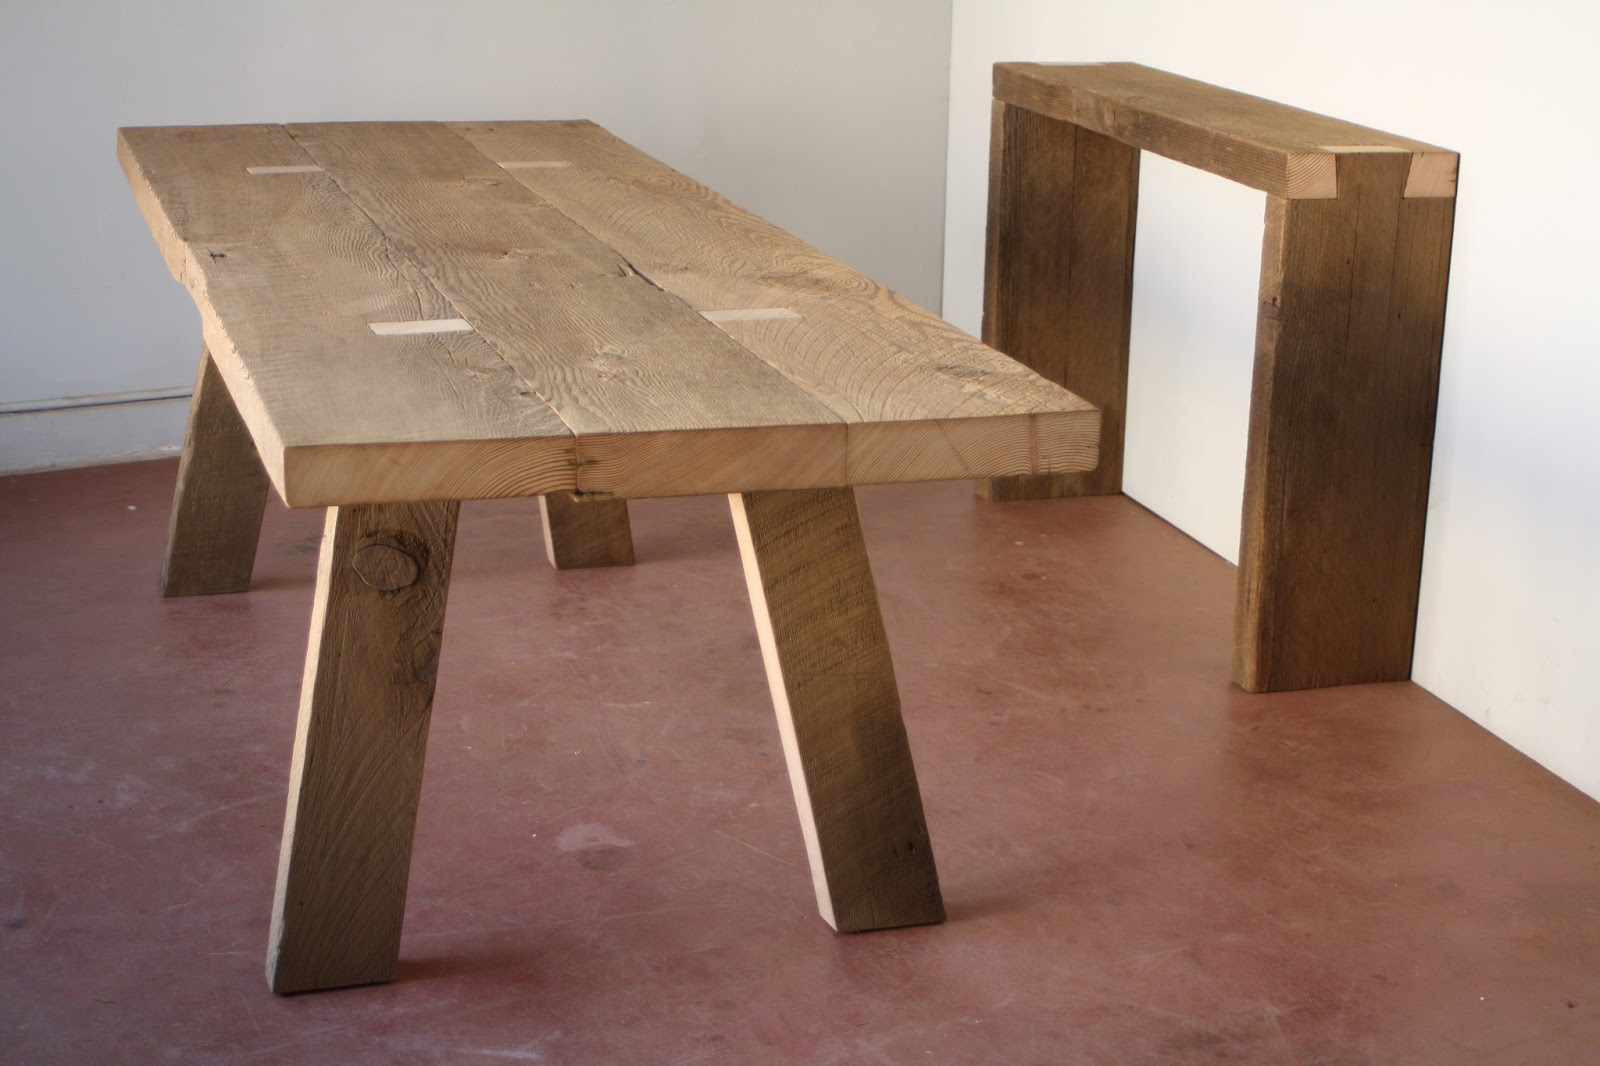 8u0027 Lock U0026 Key Dining Table And Dovetail Console In Barn Wood